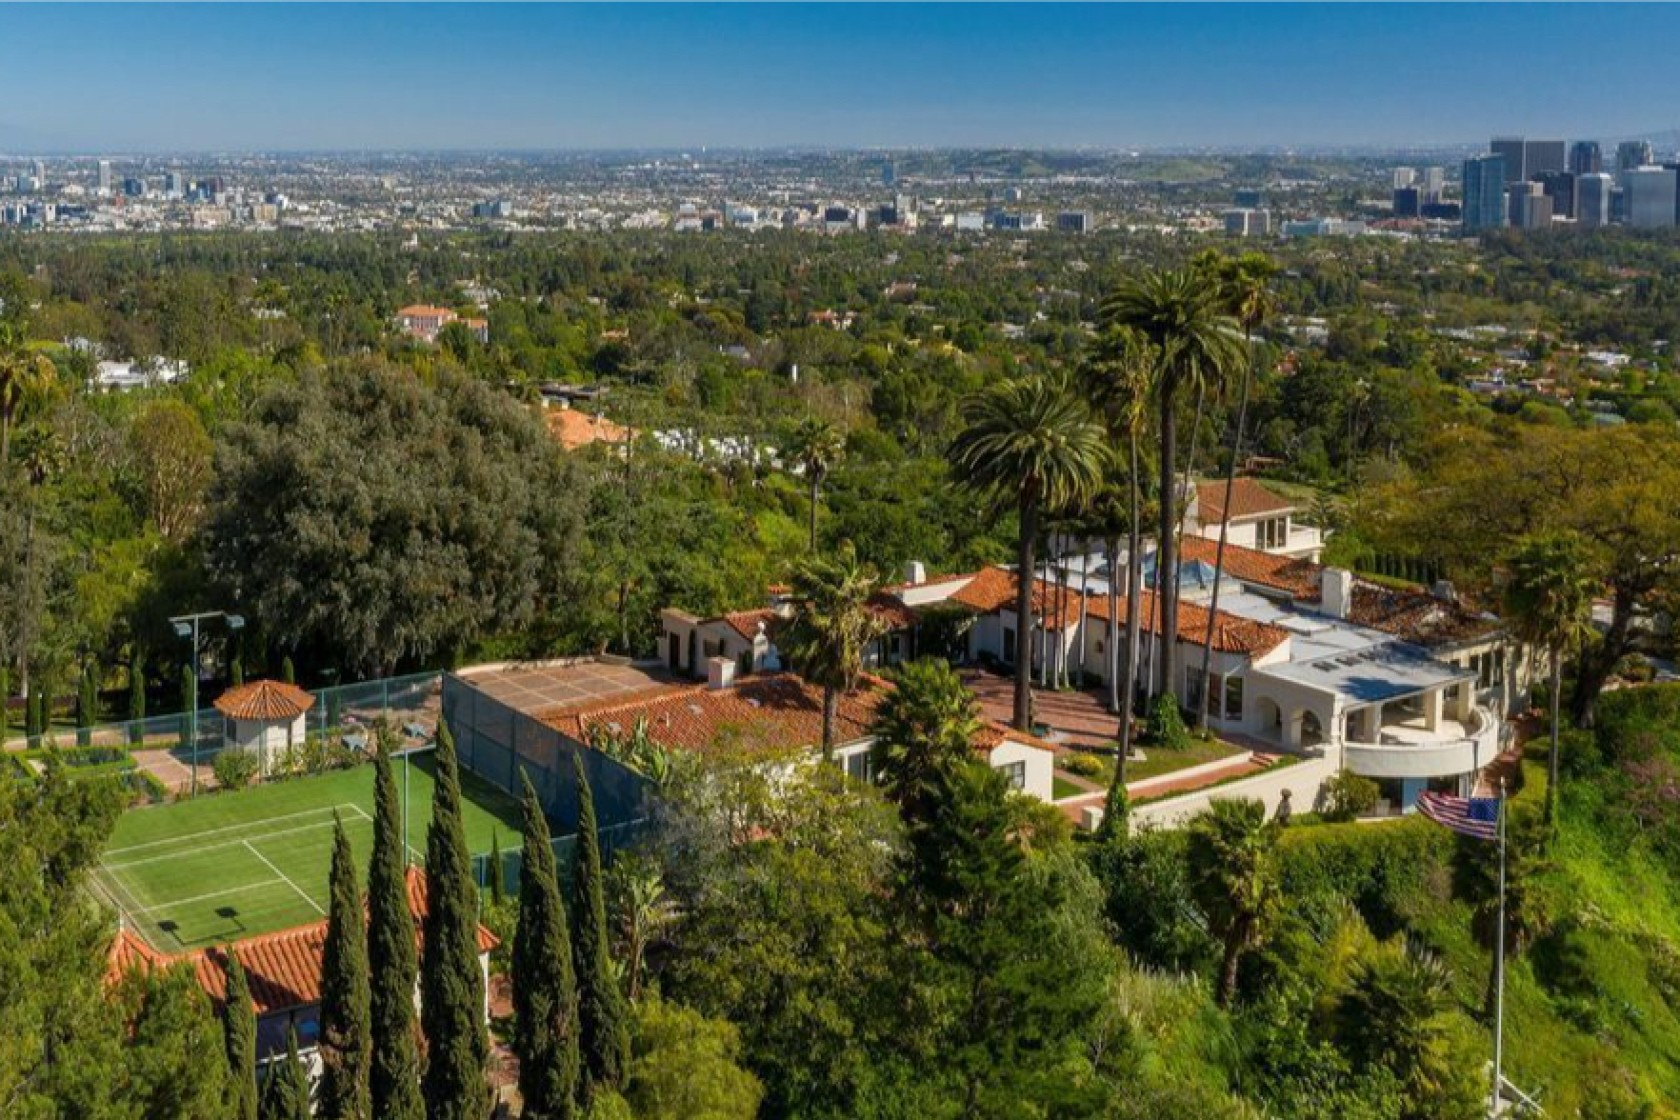 The 2.5-acre site includes a 1930s home, two guesthouses, a screening room, swimming pool and tennis court. (Realtor.com via Los Angeles Times)